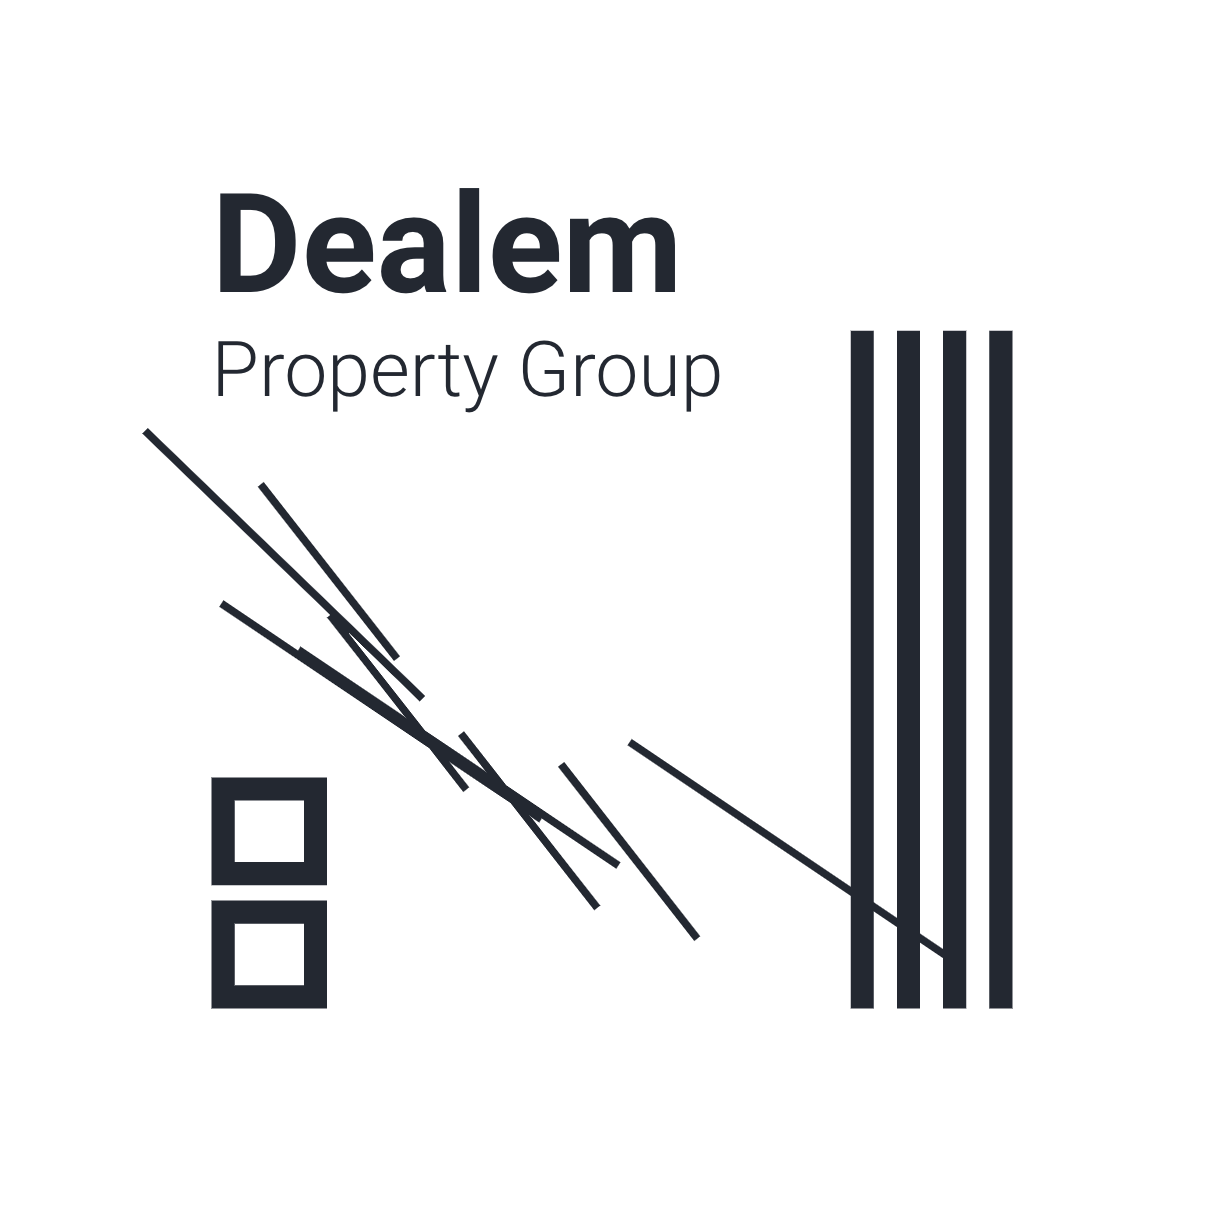 Dealem Property Group